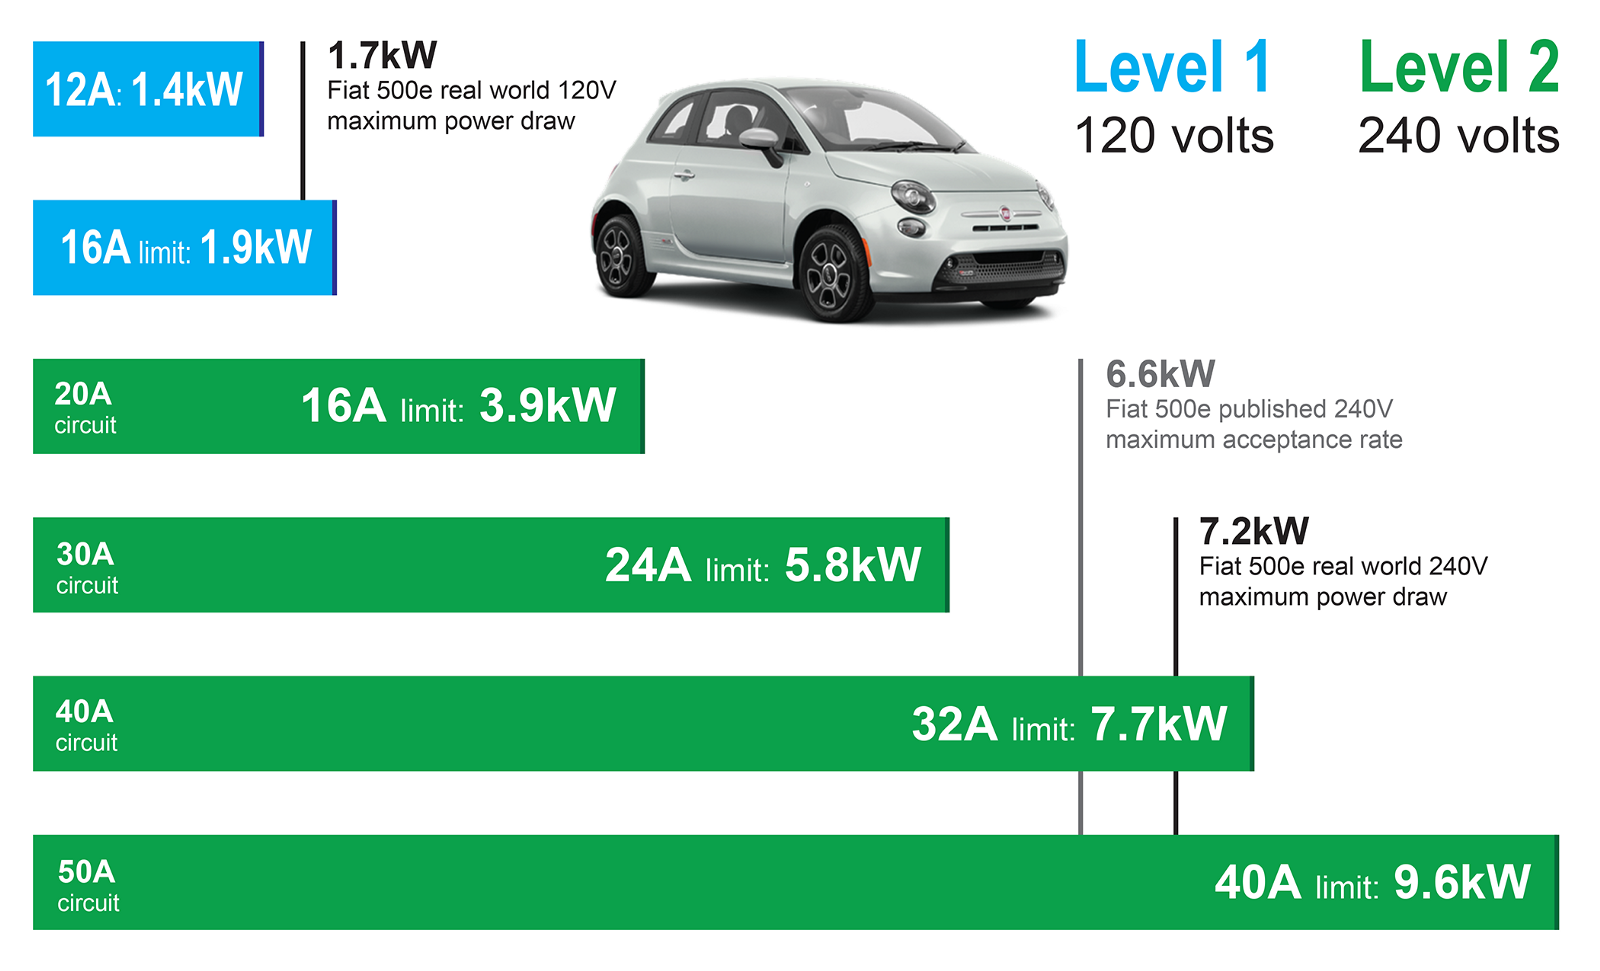 A 32 Amp Evse Supplies Just Bit More Cur Than The Fiat 500e Can Use